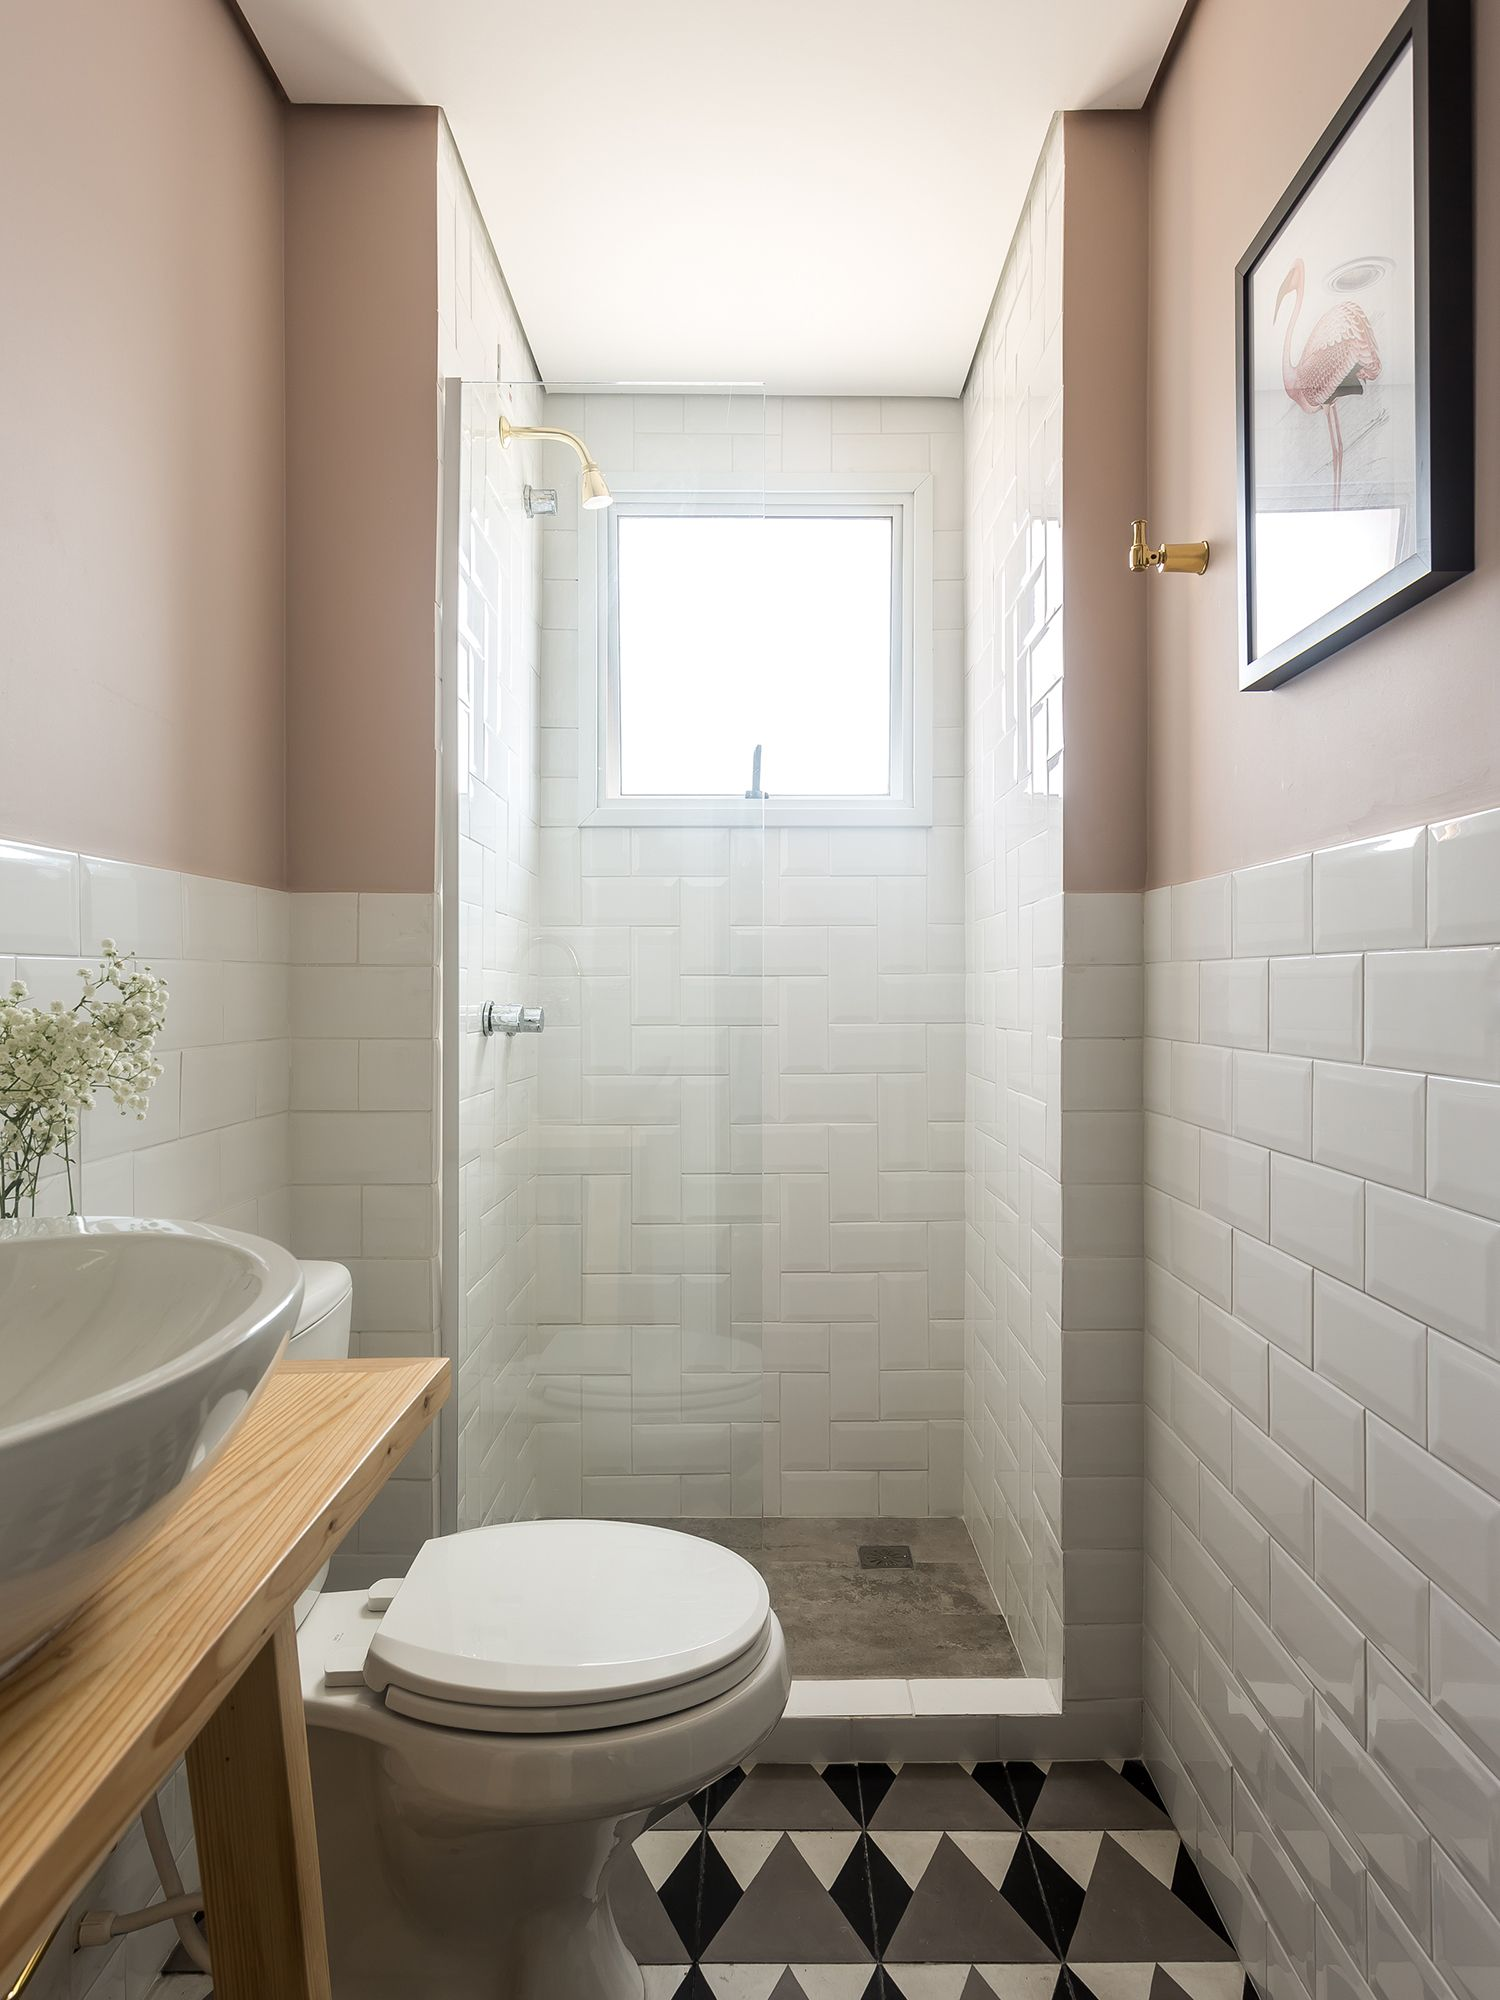 Inspirations Cozy Lowes Linoleum Flooring For Classy: 11 Alcove Shower Design Ideas For Every Style